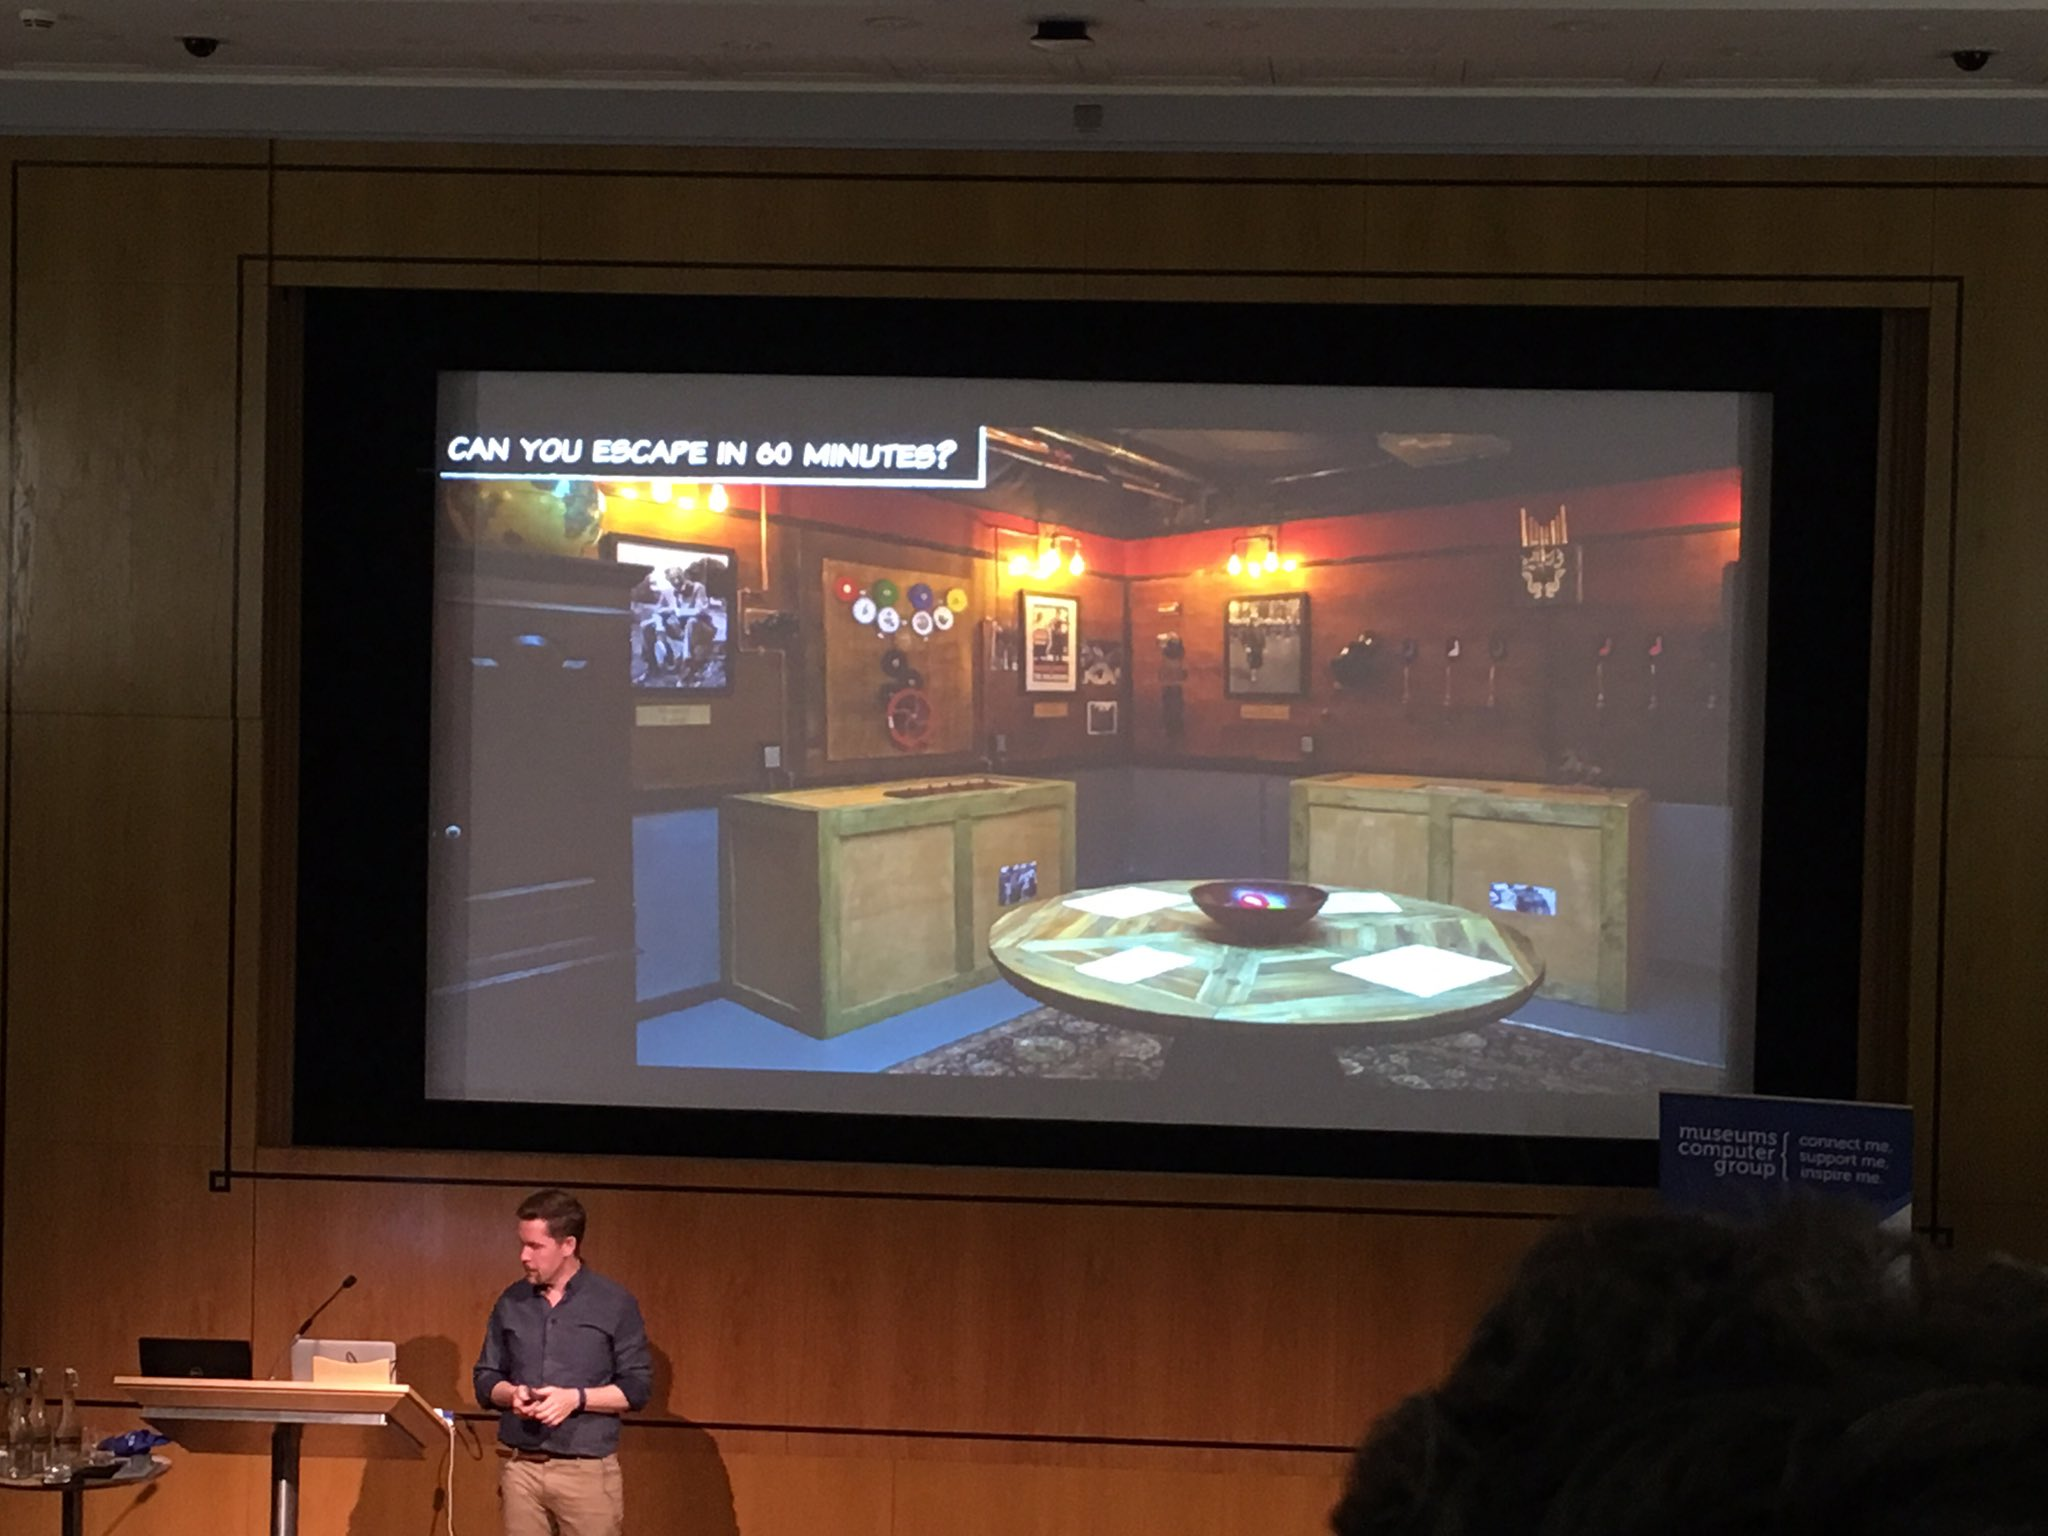 'How about setting up an exhibit to be an escape the room game?' #musetech16 (Yes! If anyone wants to collaborate on this, let us know!) https://t.co/1gunDYlZP5